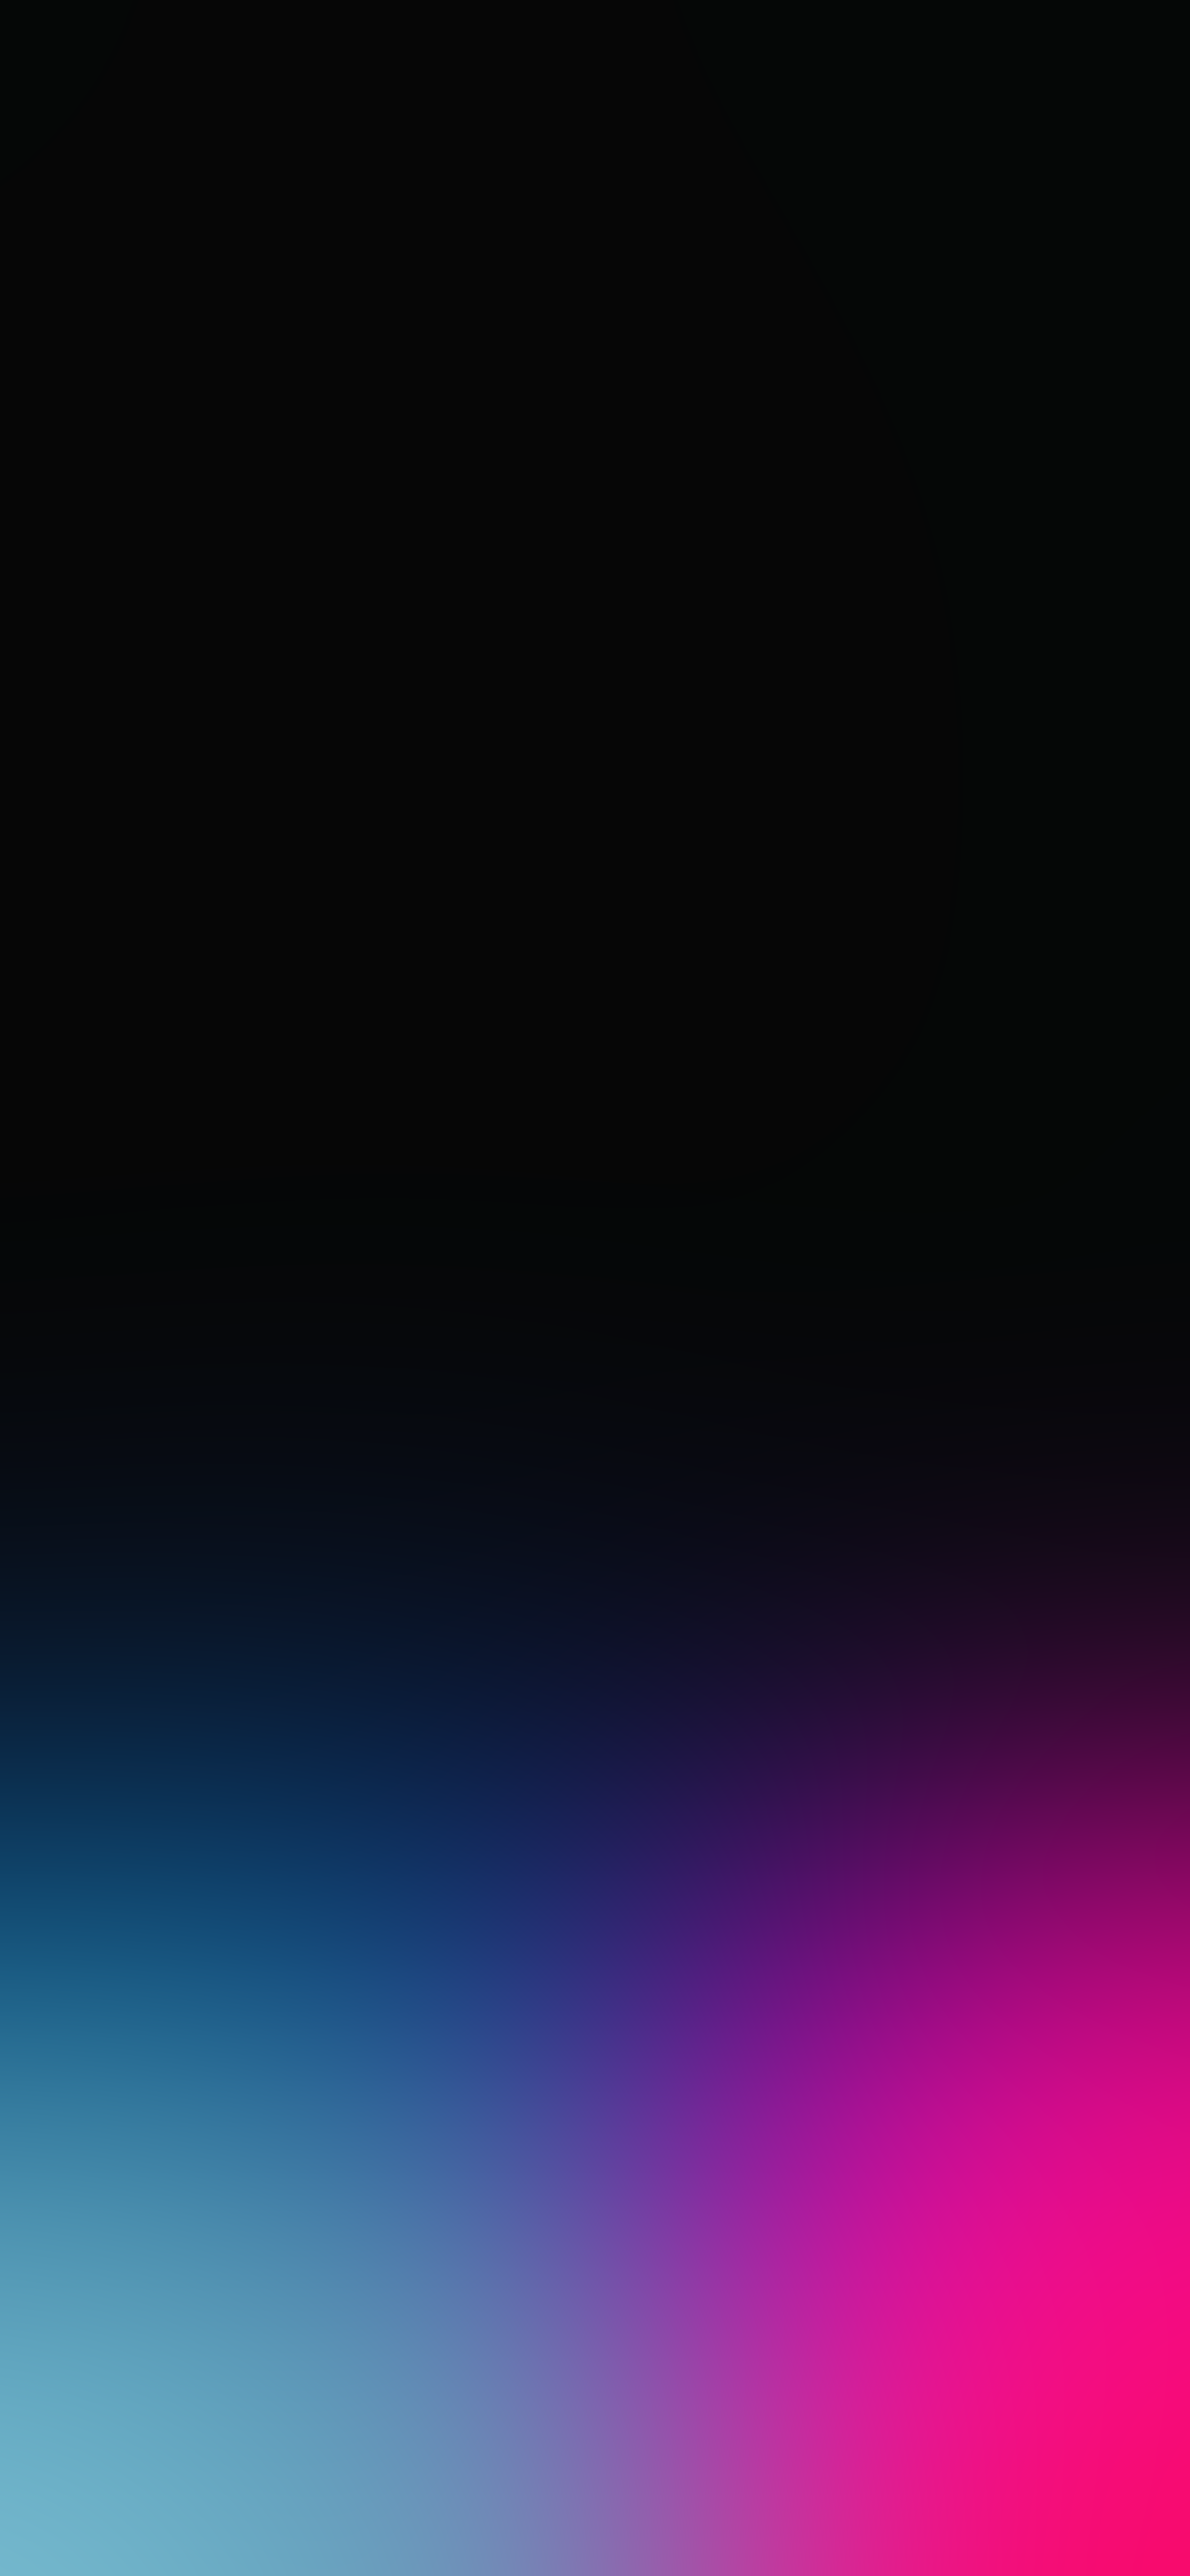 iPhone wallpapers gradient colors 2 Fonds d'écran iPhone du 02/01/2019